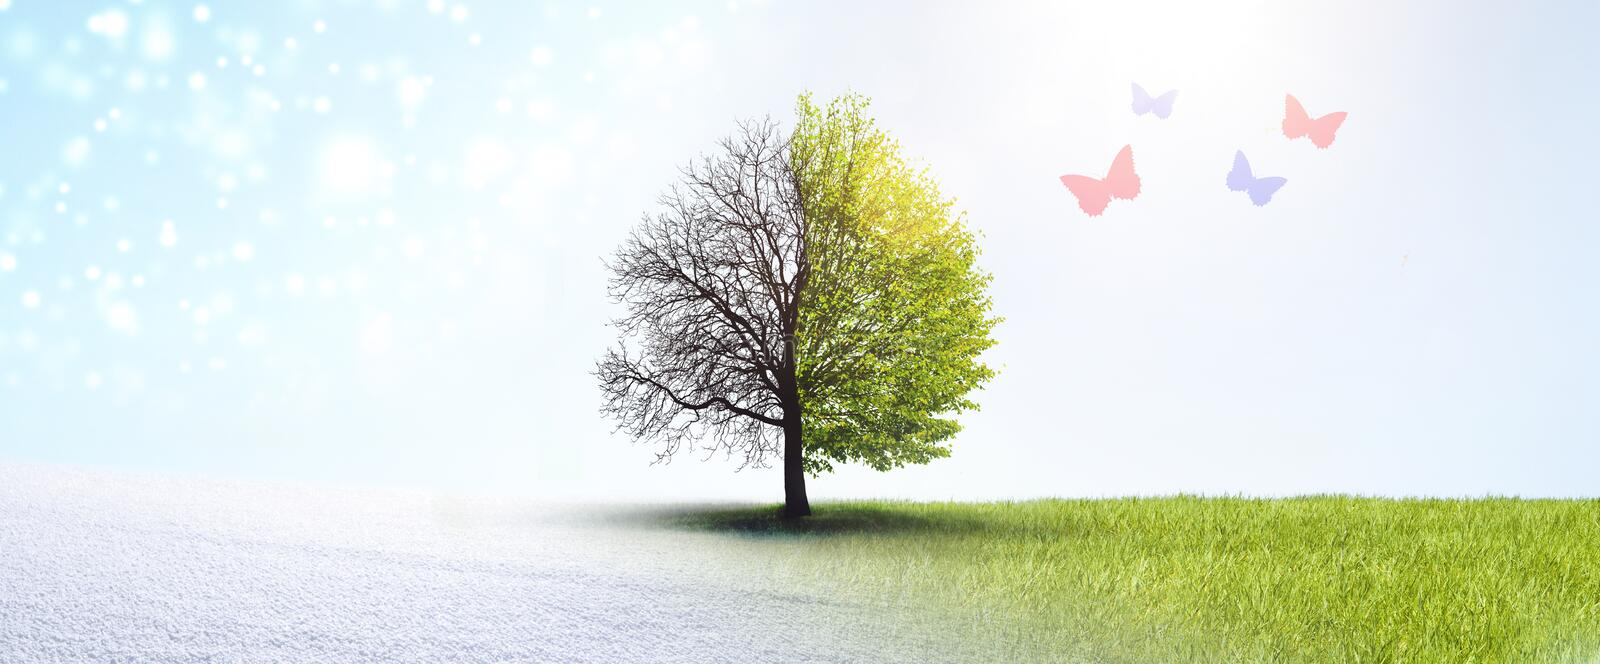 Transition of Season. In Landscape royalty free stock photography